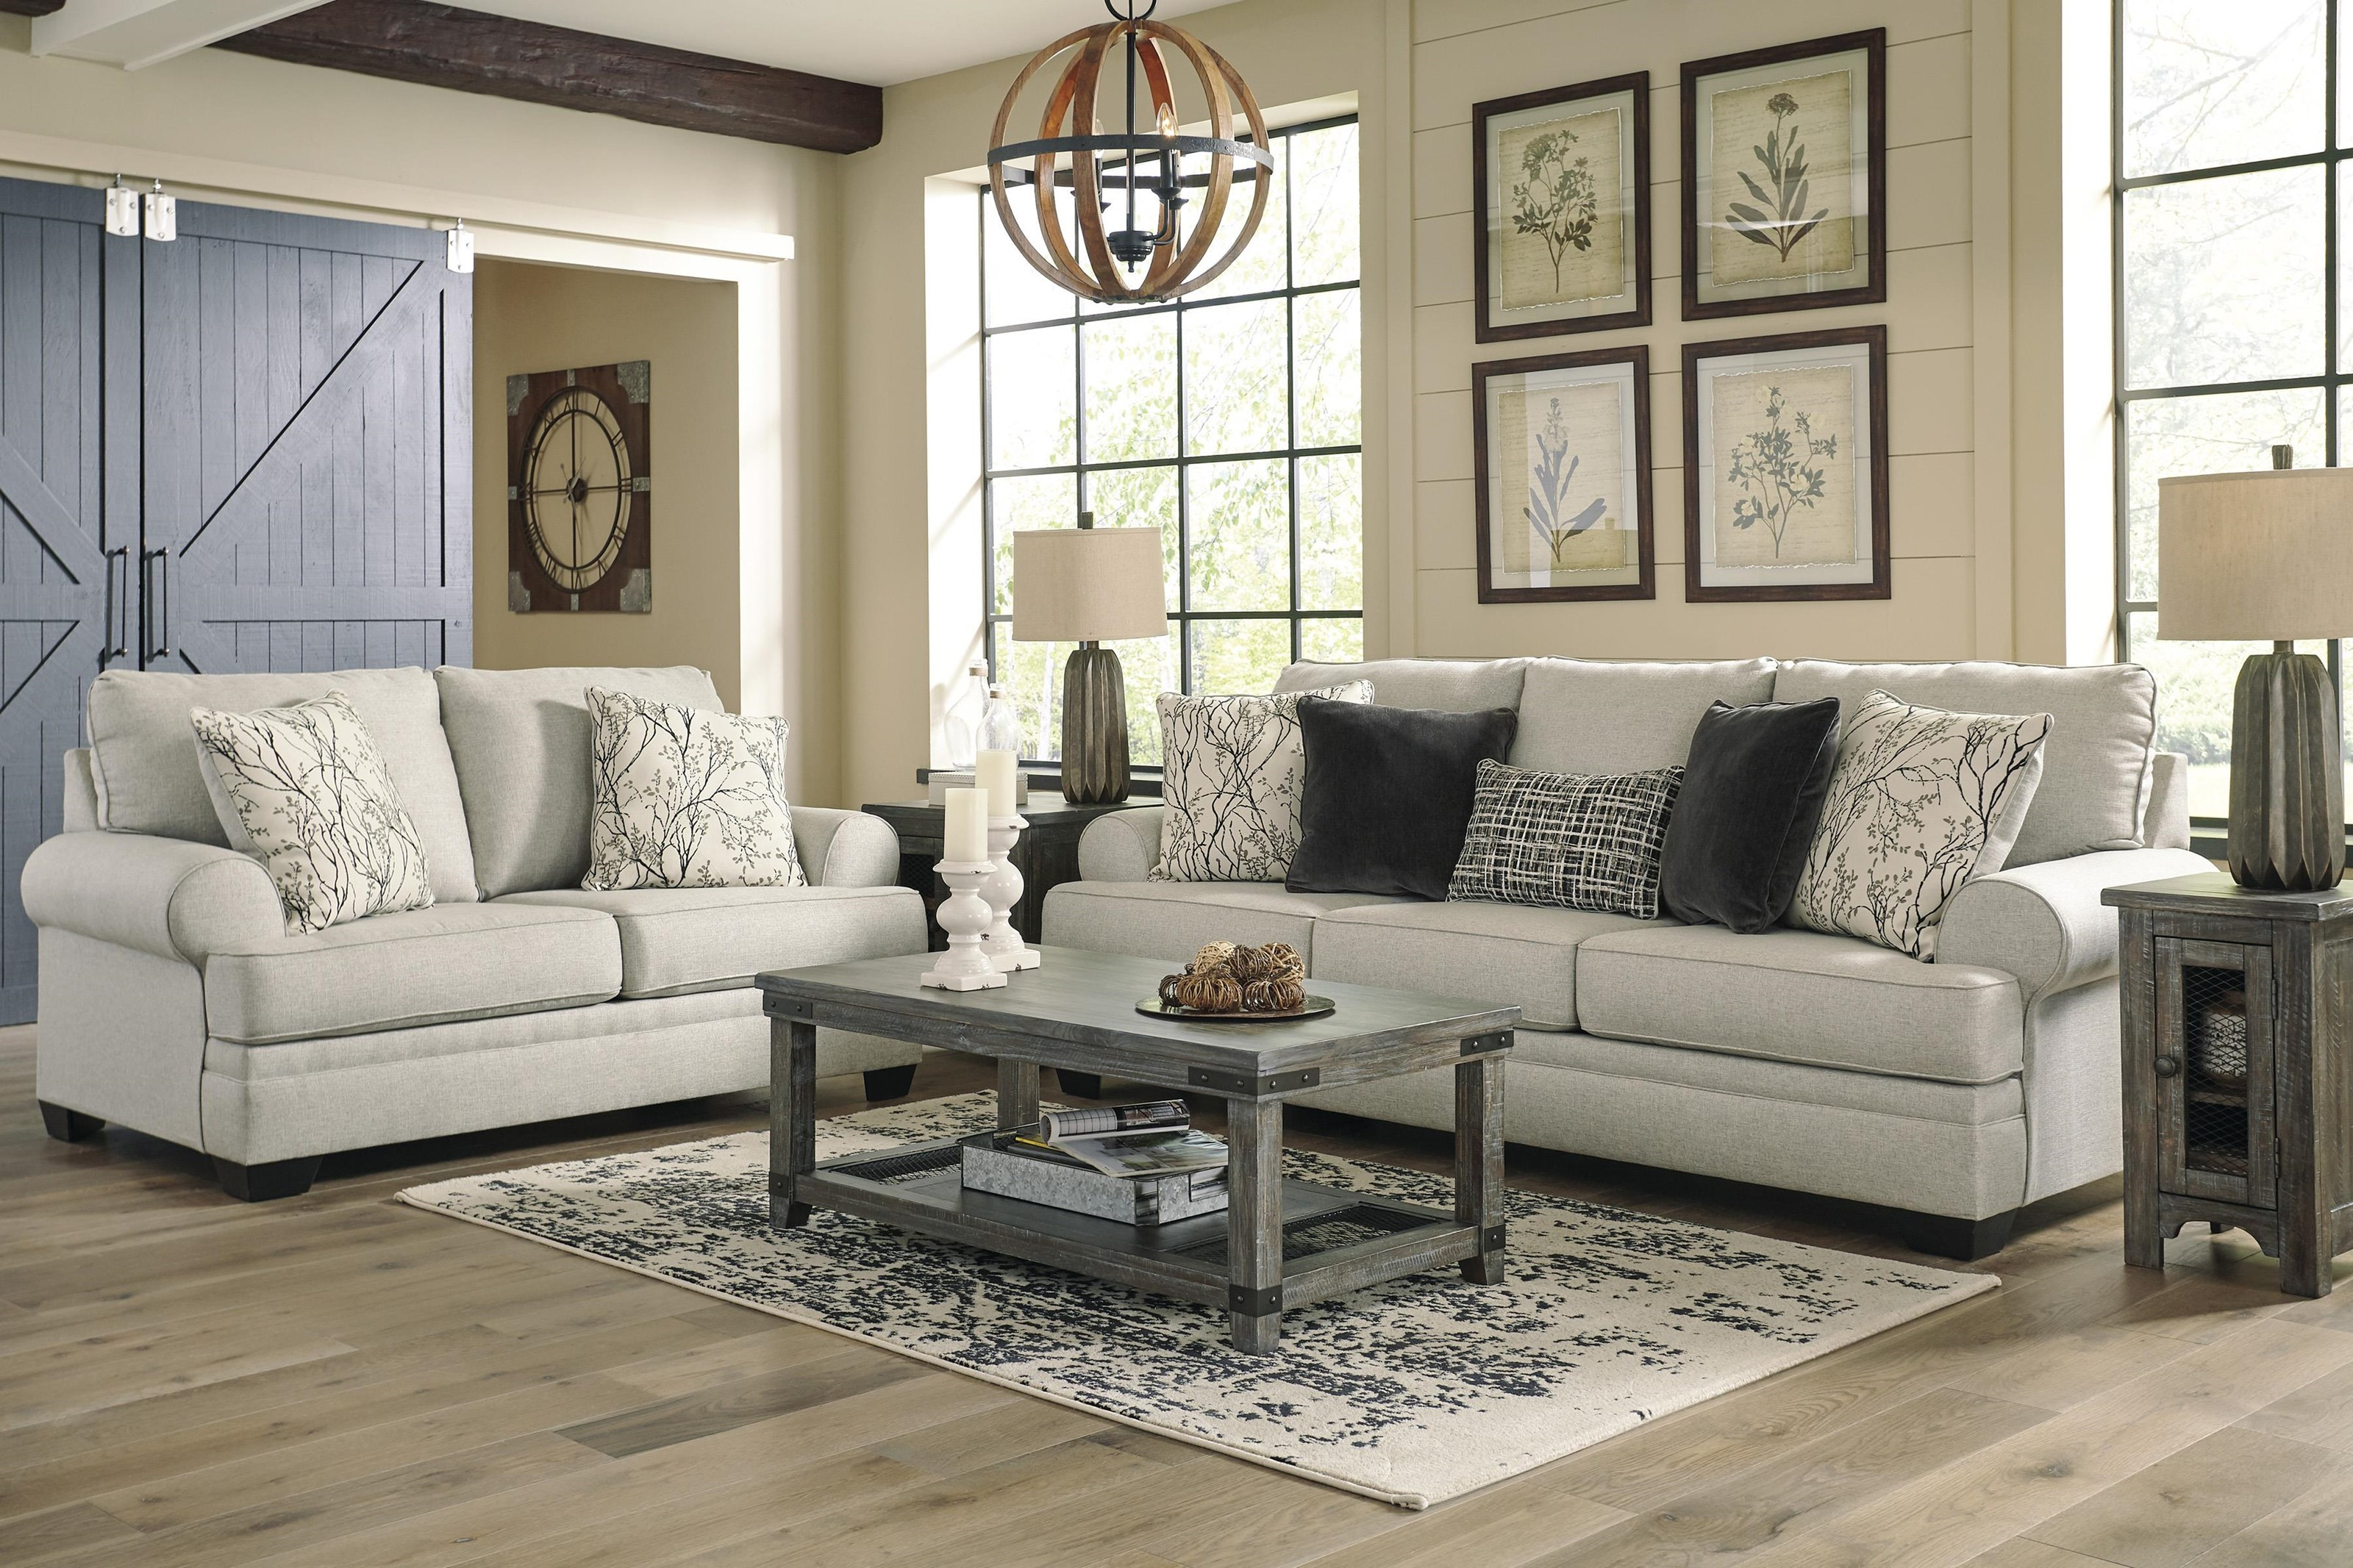 Picture of: Ashley Furniture Antonlini 2100138 35 Fog Sofa And Loveseat Set Sam Levitz Furniture Stationary Living Room Groups